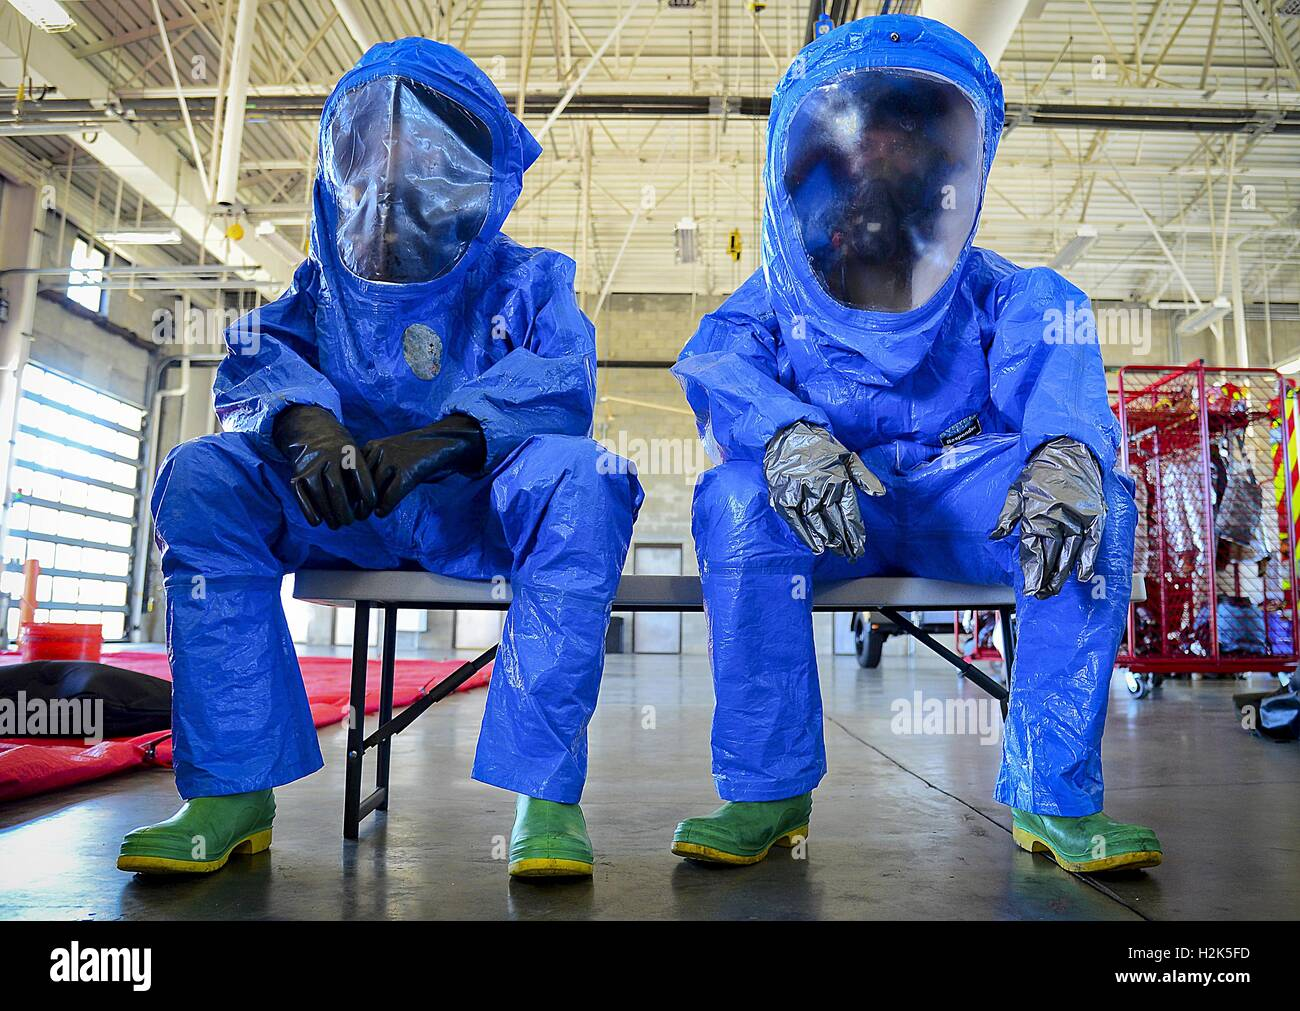 U.S. Air Force soldiers wear protective hazmat clothing in preparation for hazardous material decontamination training - Stock Image